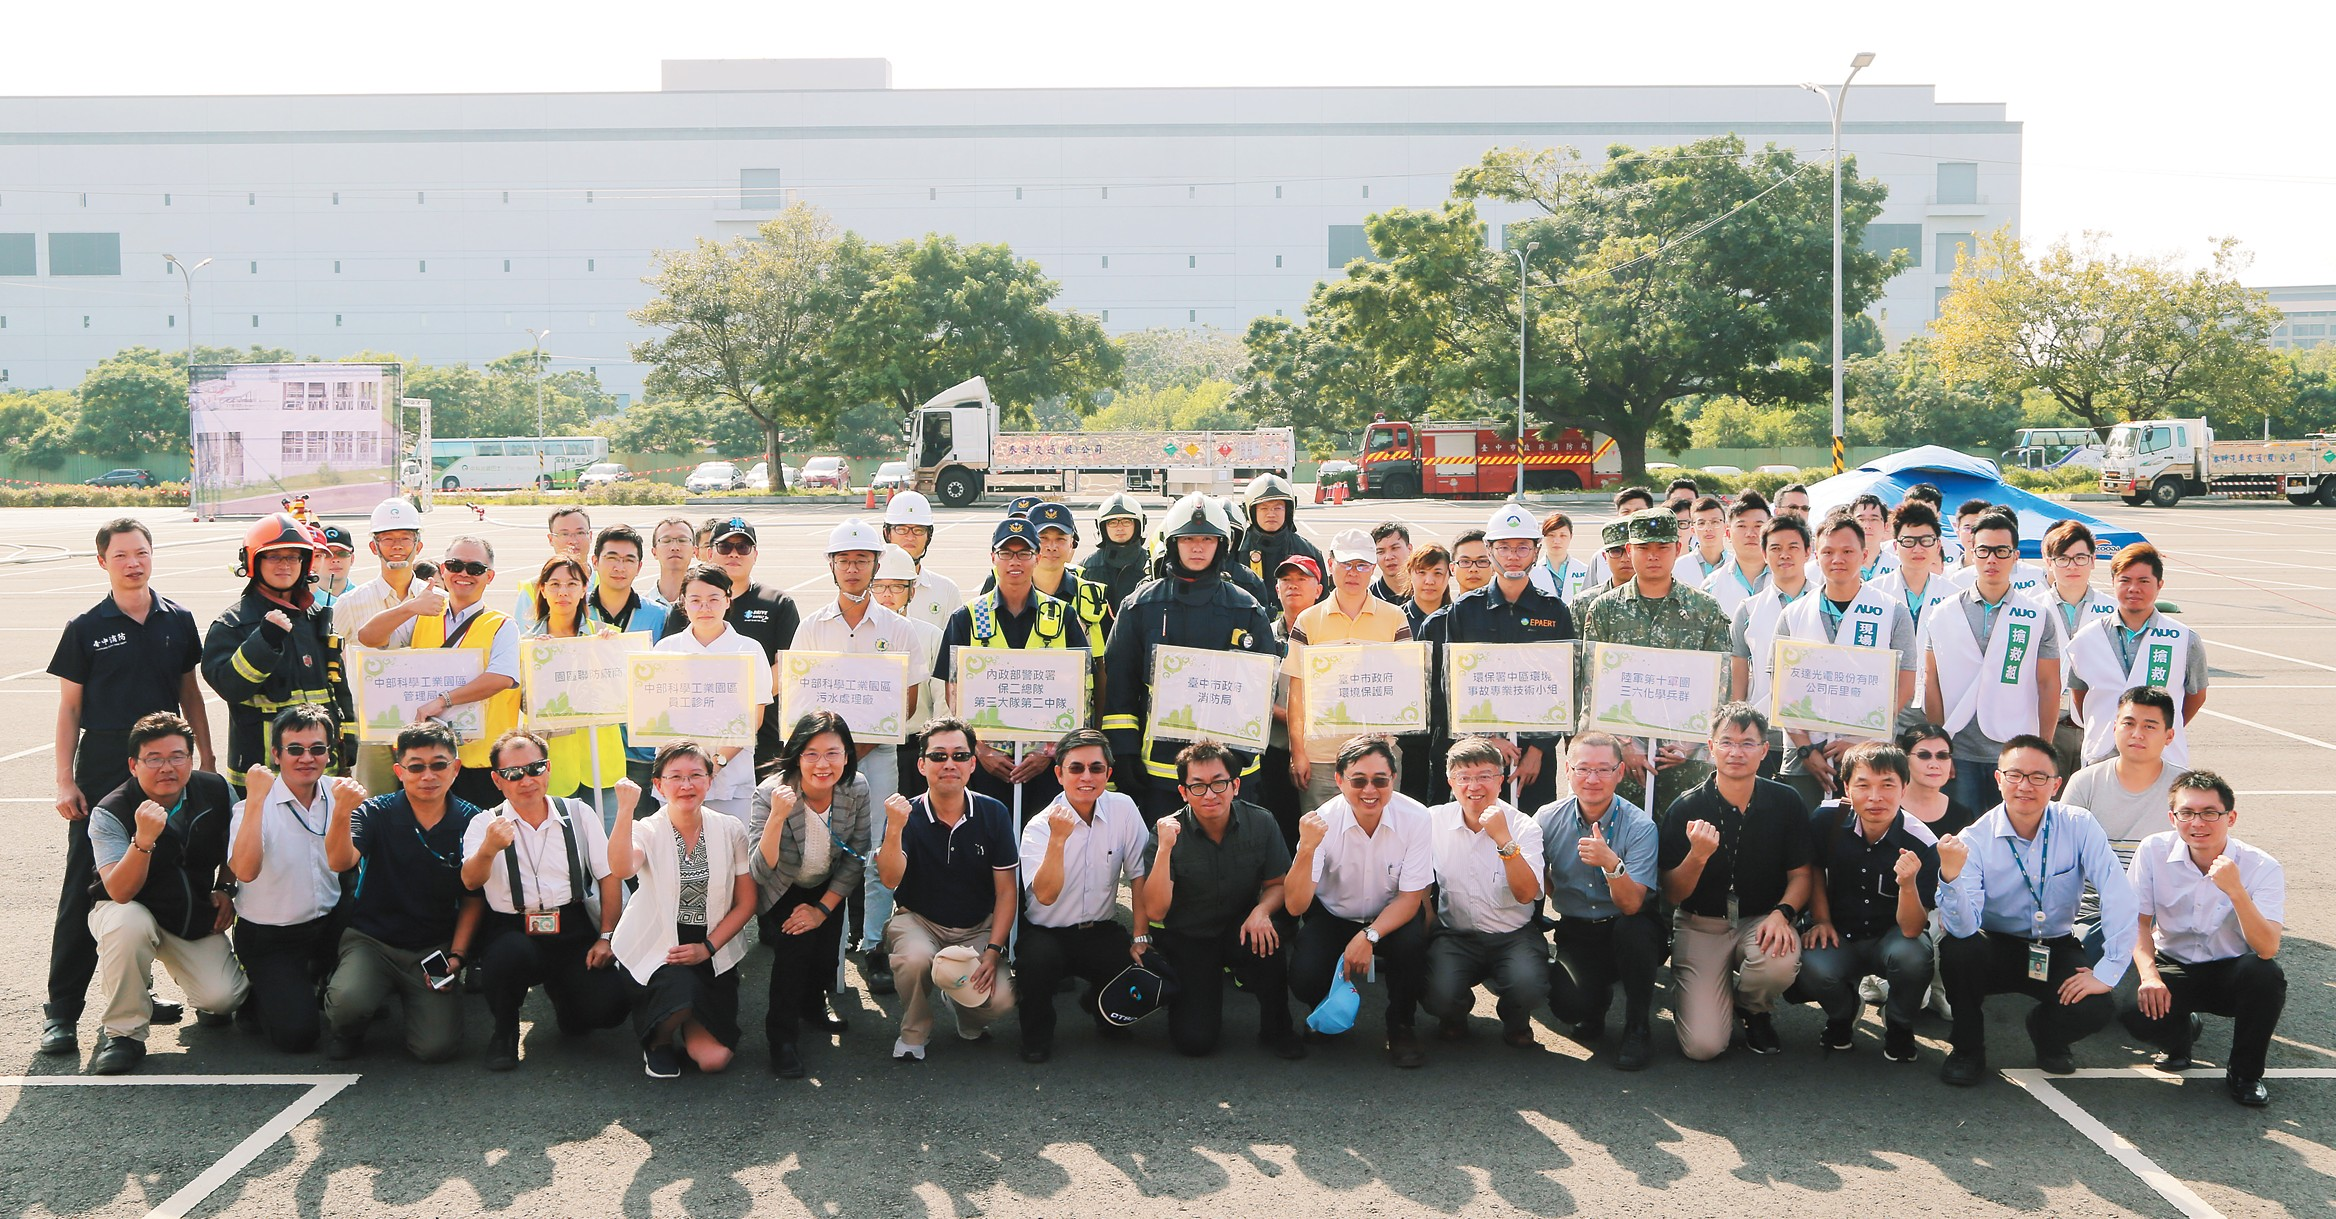 2019 Annual Joint Disaster Prevention Drill Co-hosted by Taichung City Government, CTSP & AUO